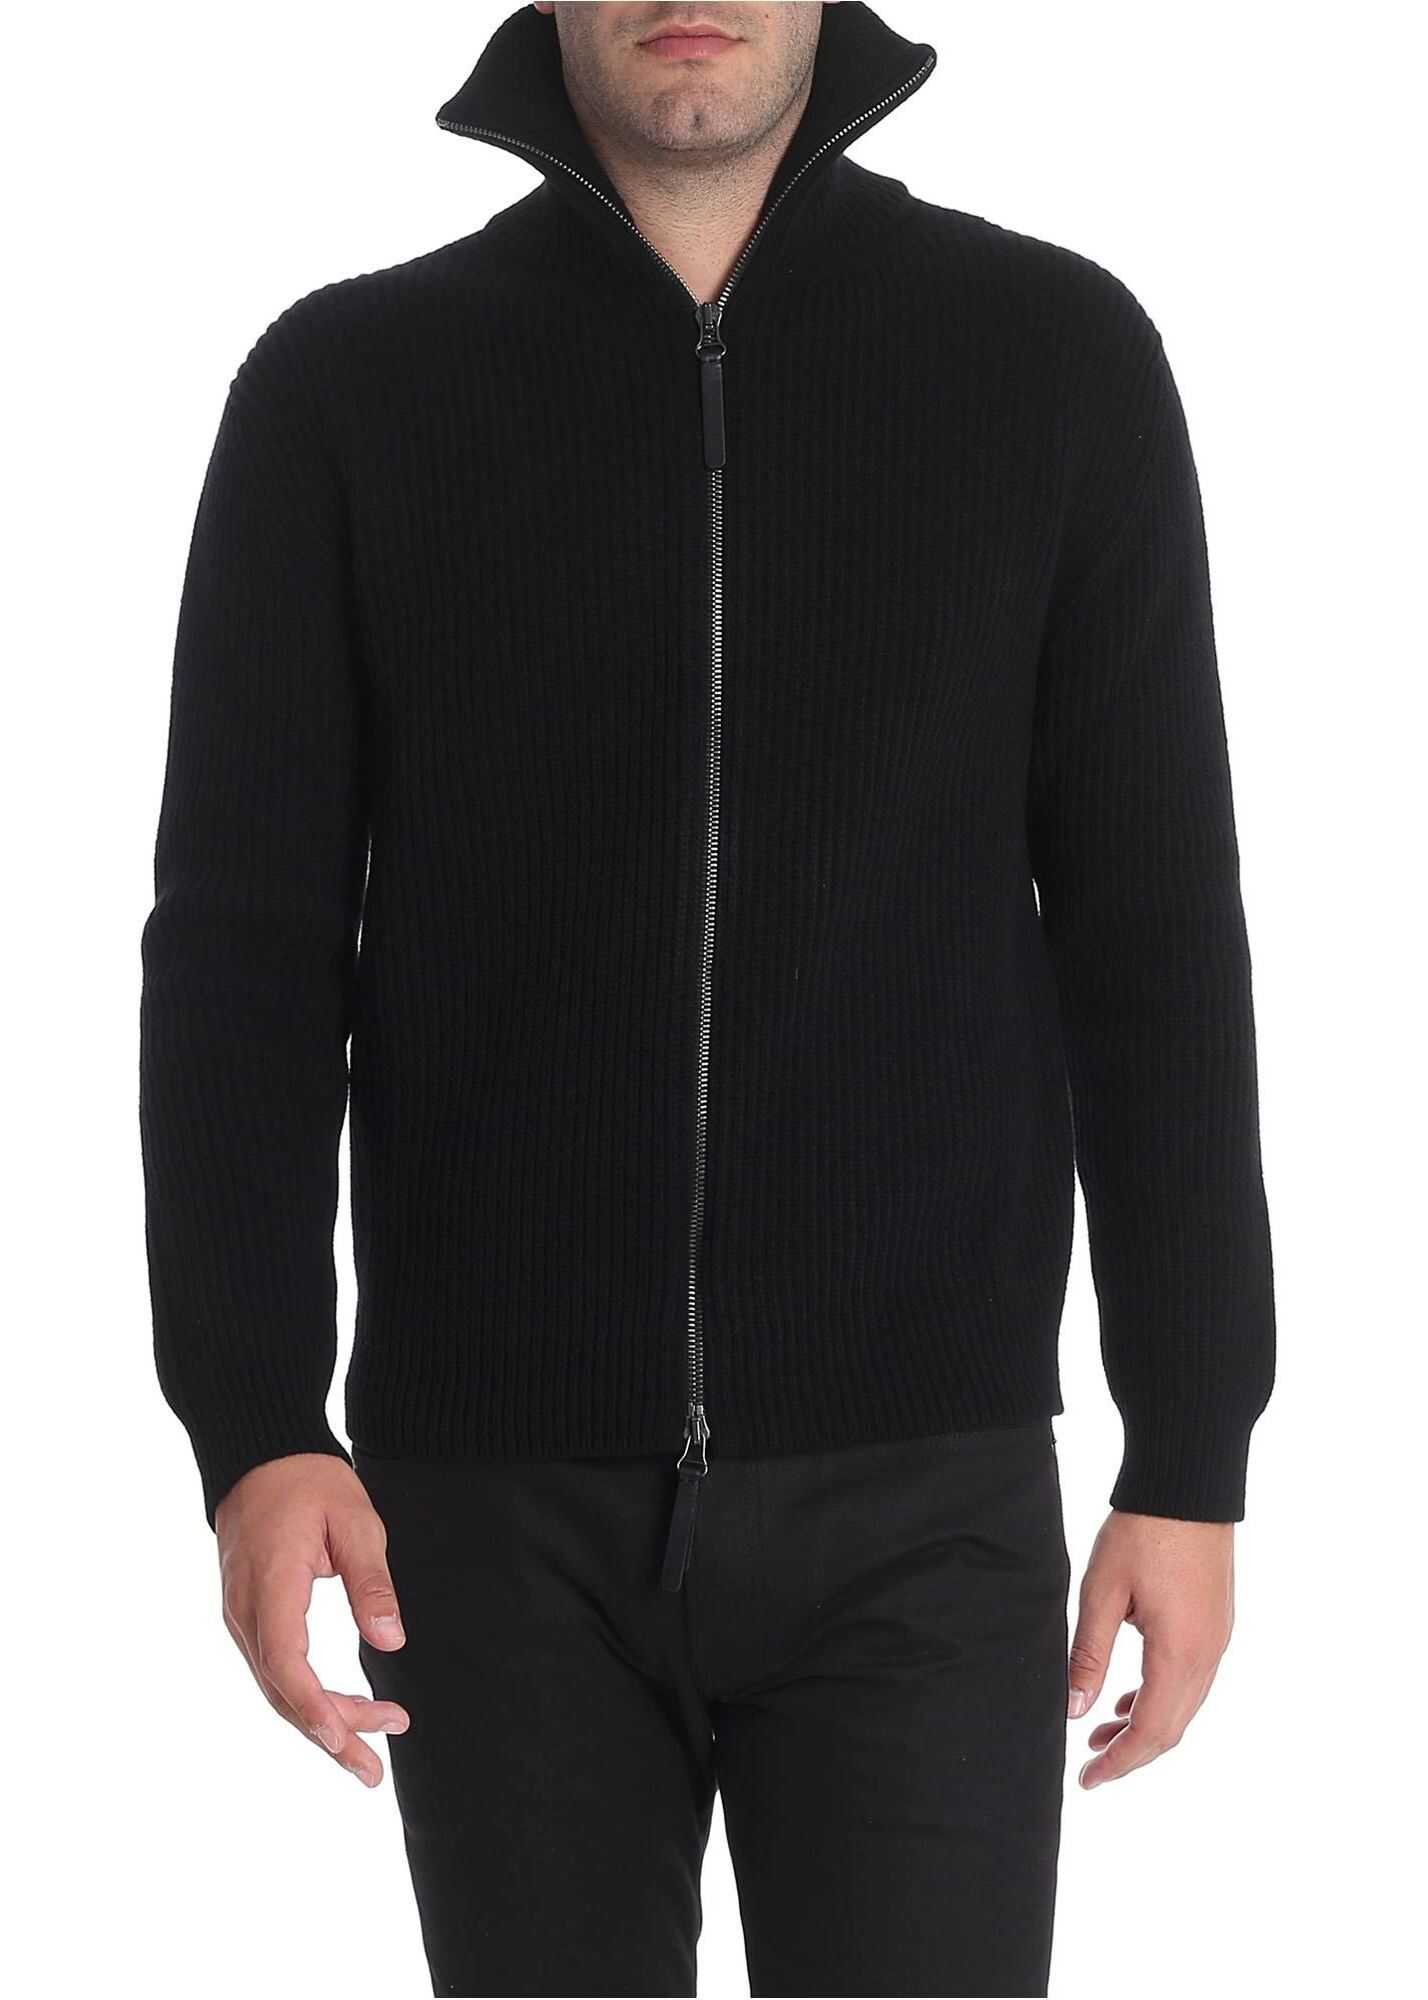 Ermanno Scervino Black Fisherman Ribbed Cardigan Black